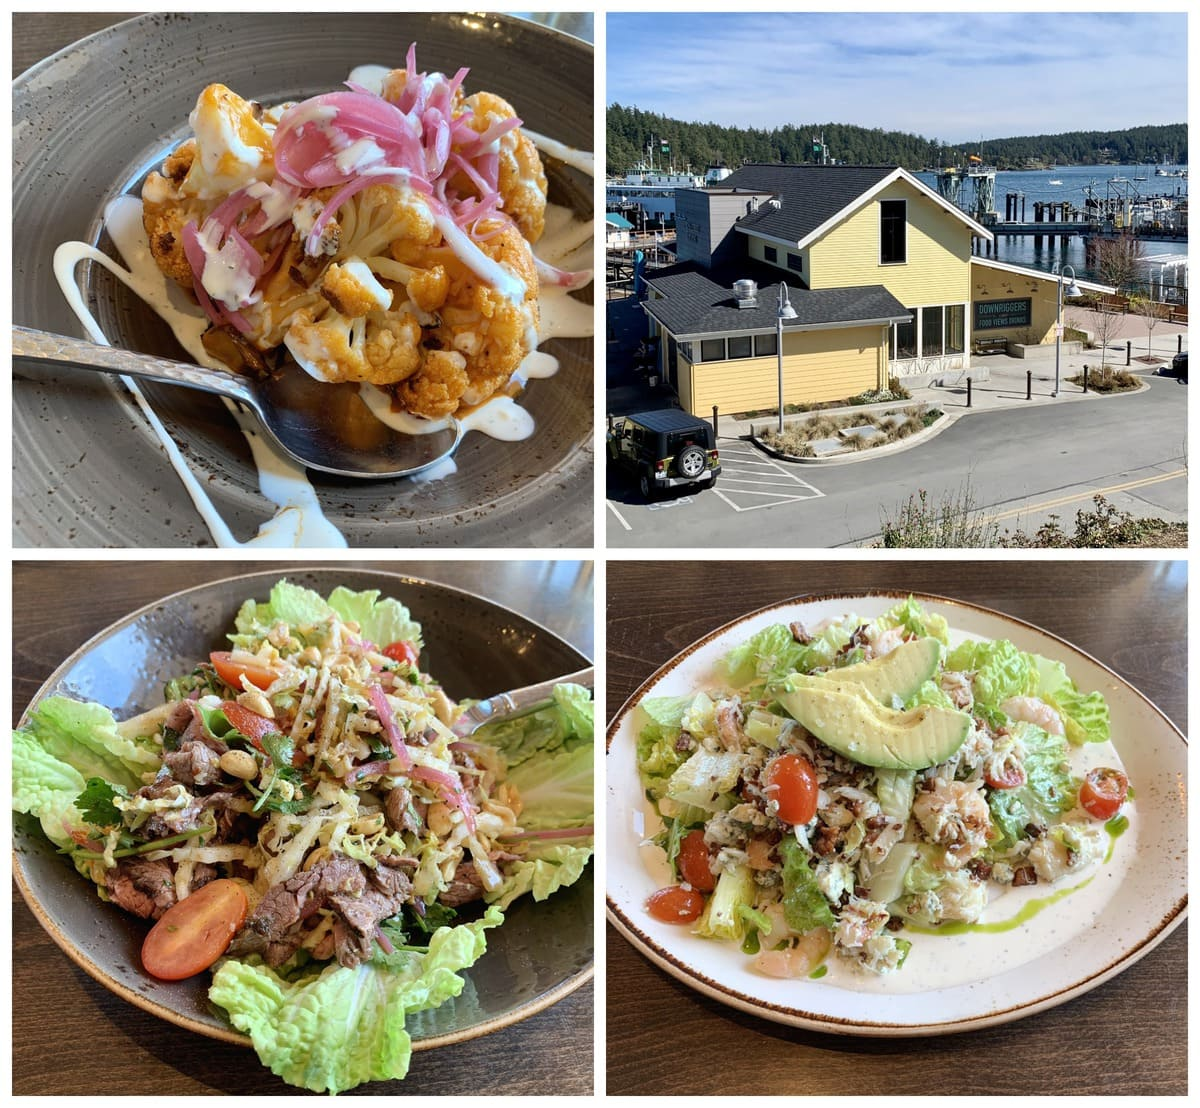 Staycation Fun in the San Juan Islands | Peace Love and Low Carb